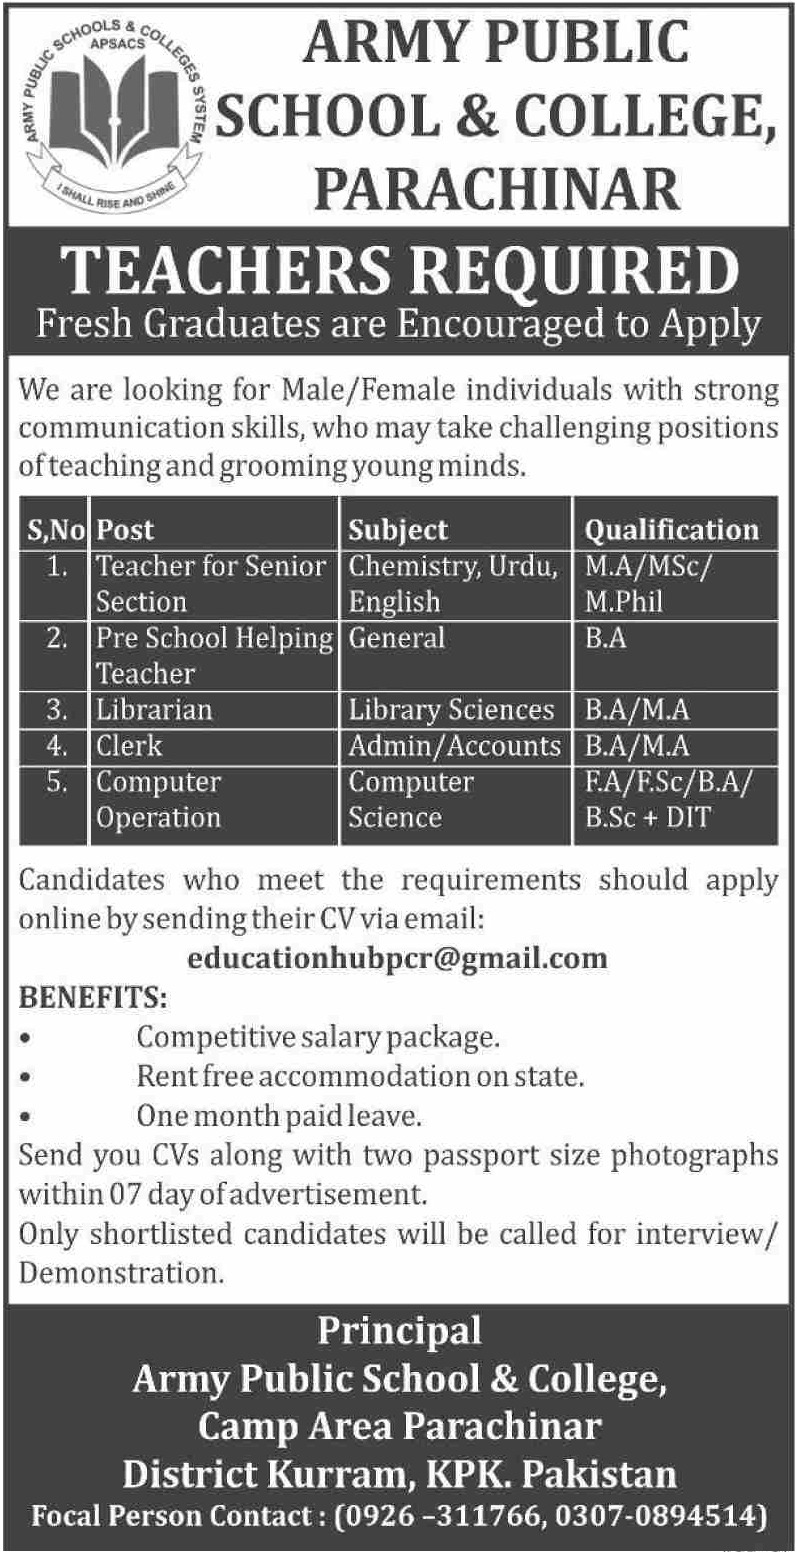 Army Public School & College APS&C Parachinar Kurram Jobs 2019 KPK